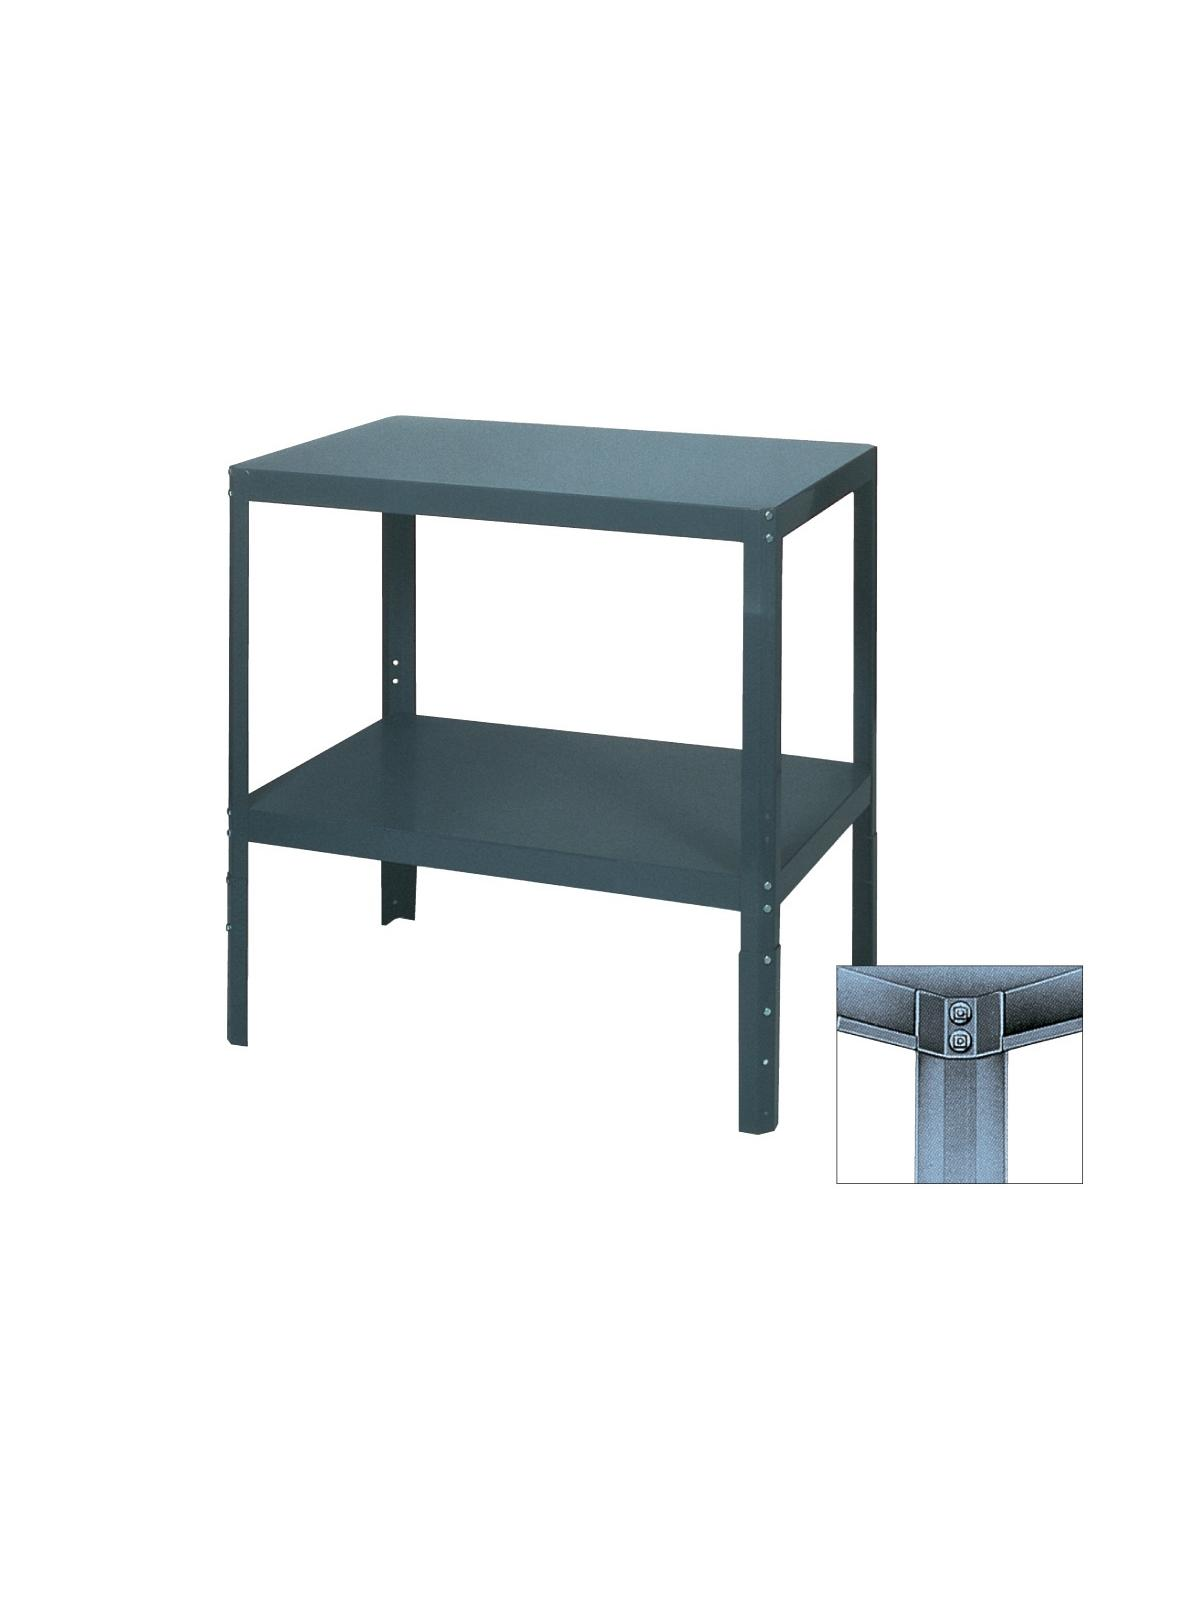 Heavy Duty Work Tables At Nationwide Industrial Supply Llc